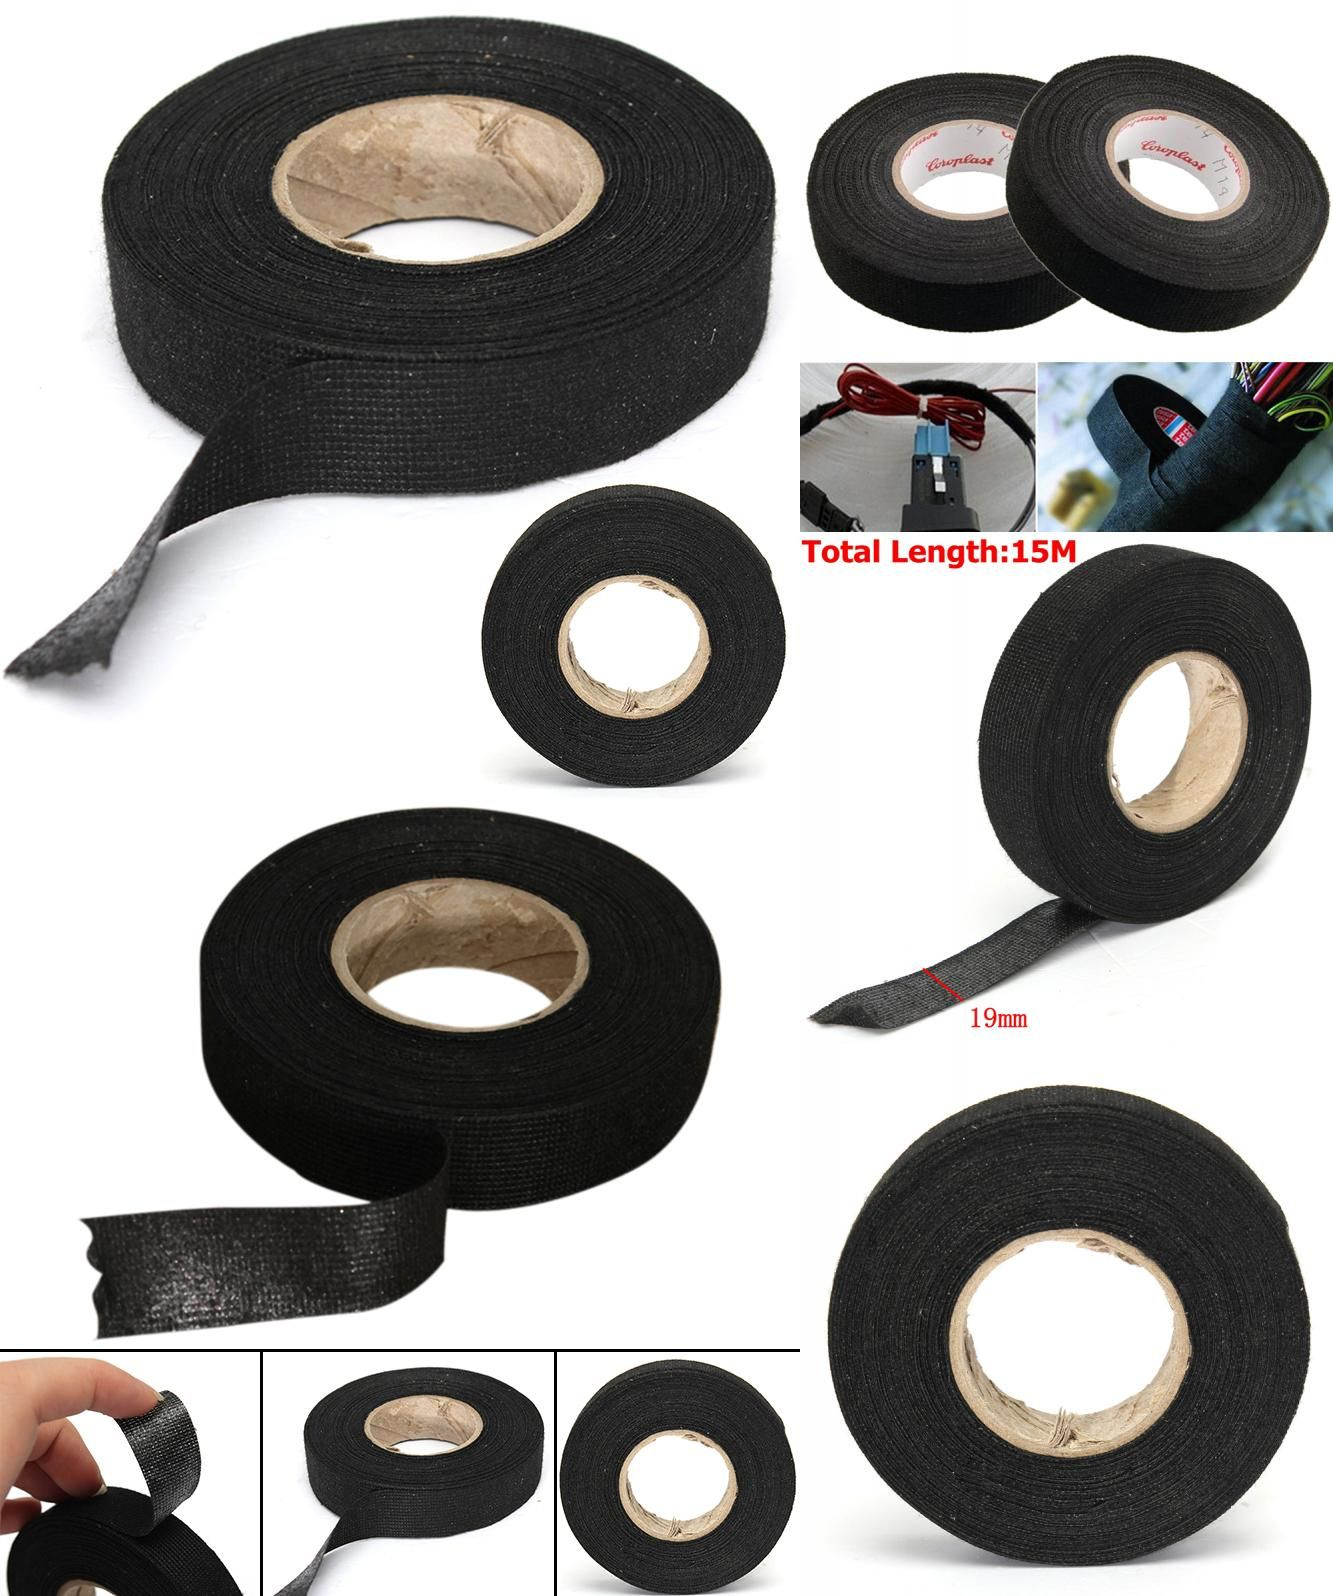 Visit To Buy 1pc Wiring Harness Tape Strong Adhesive Cloth Fabric Loom For Looms